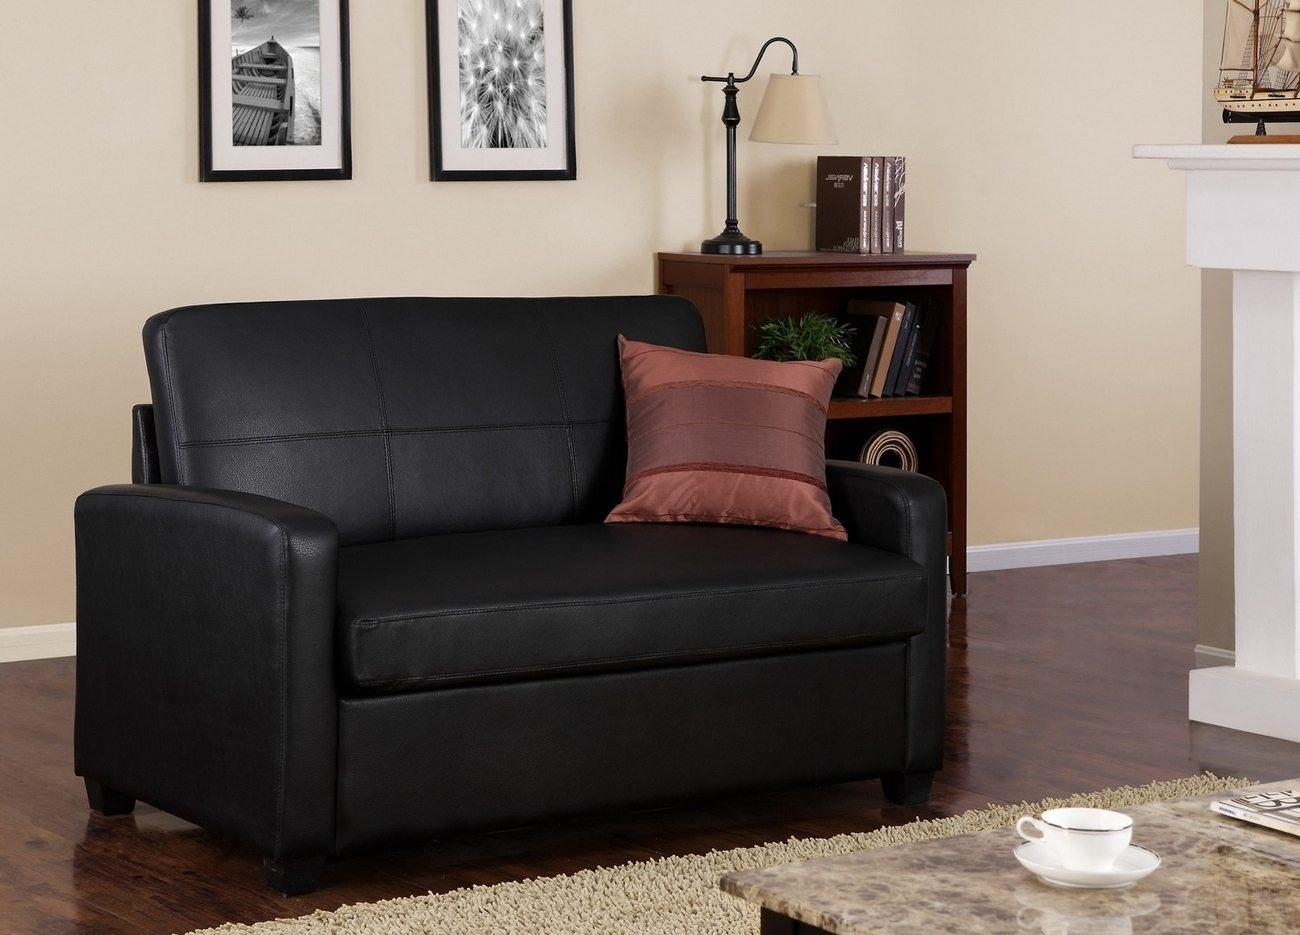 Mainstays Sleeper Sofa Mainstays Sofa Sleeper Black Faux Leather Pertaining To Mainstays Sleeper Sofas (View 16 of 20)